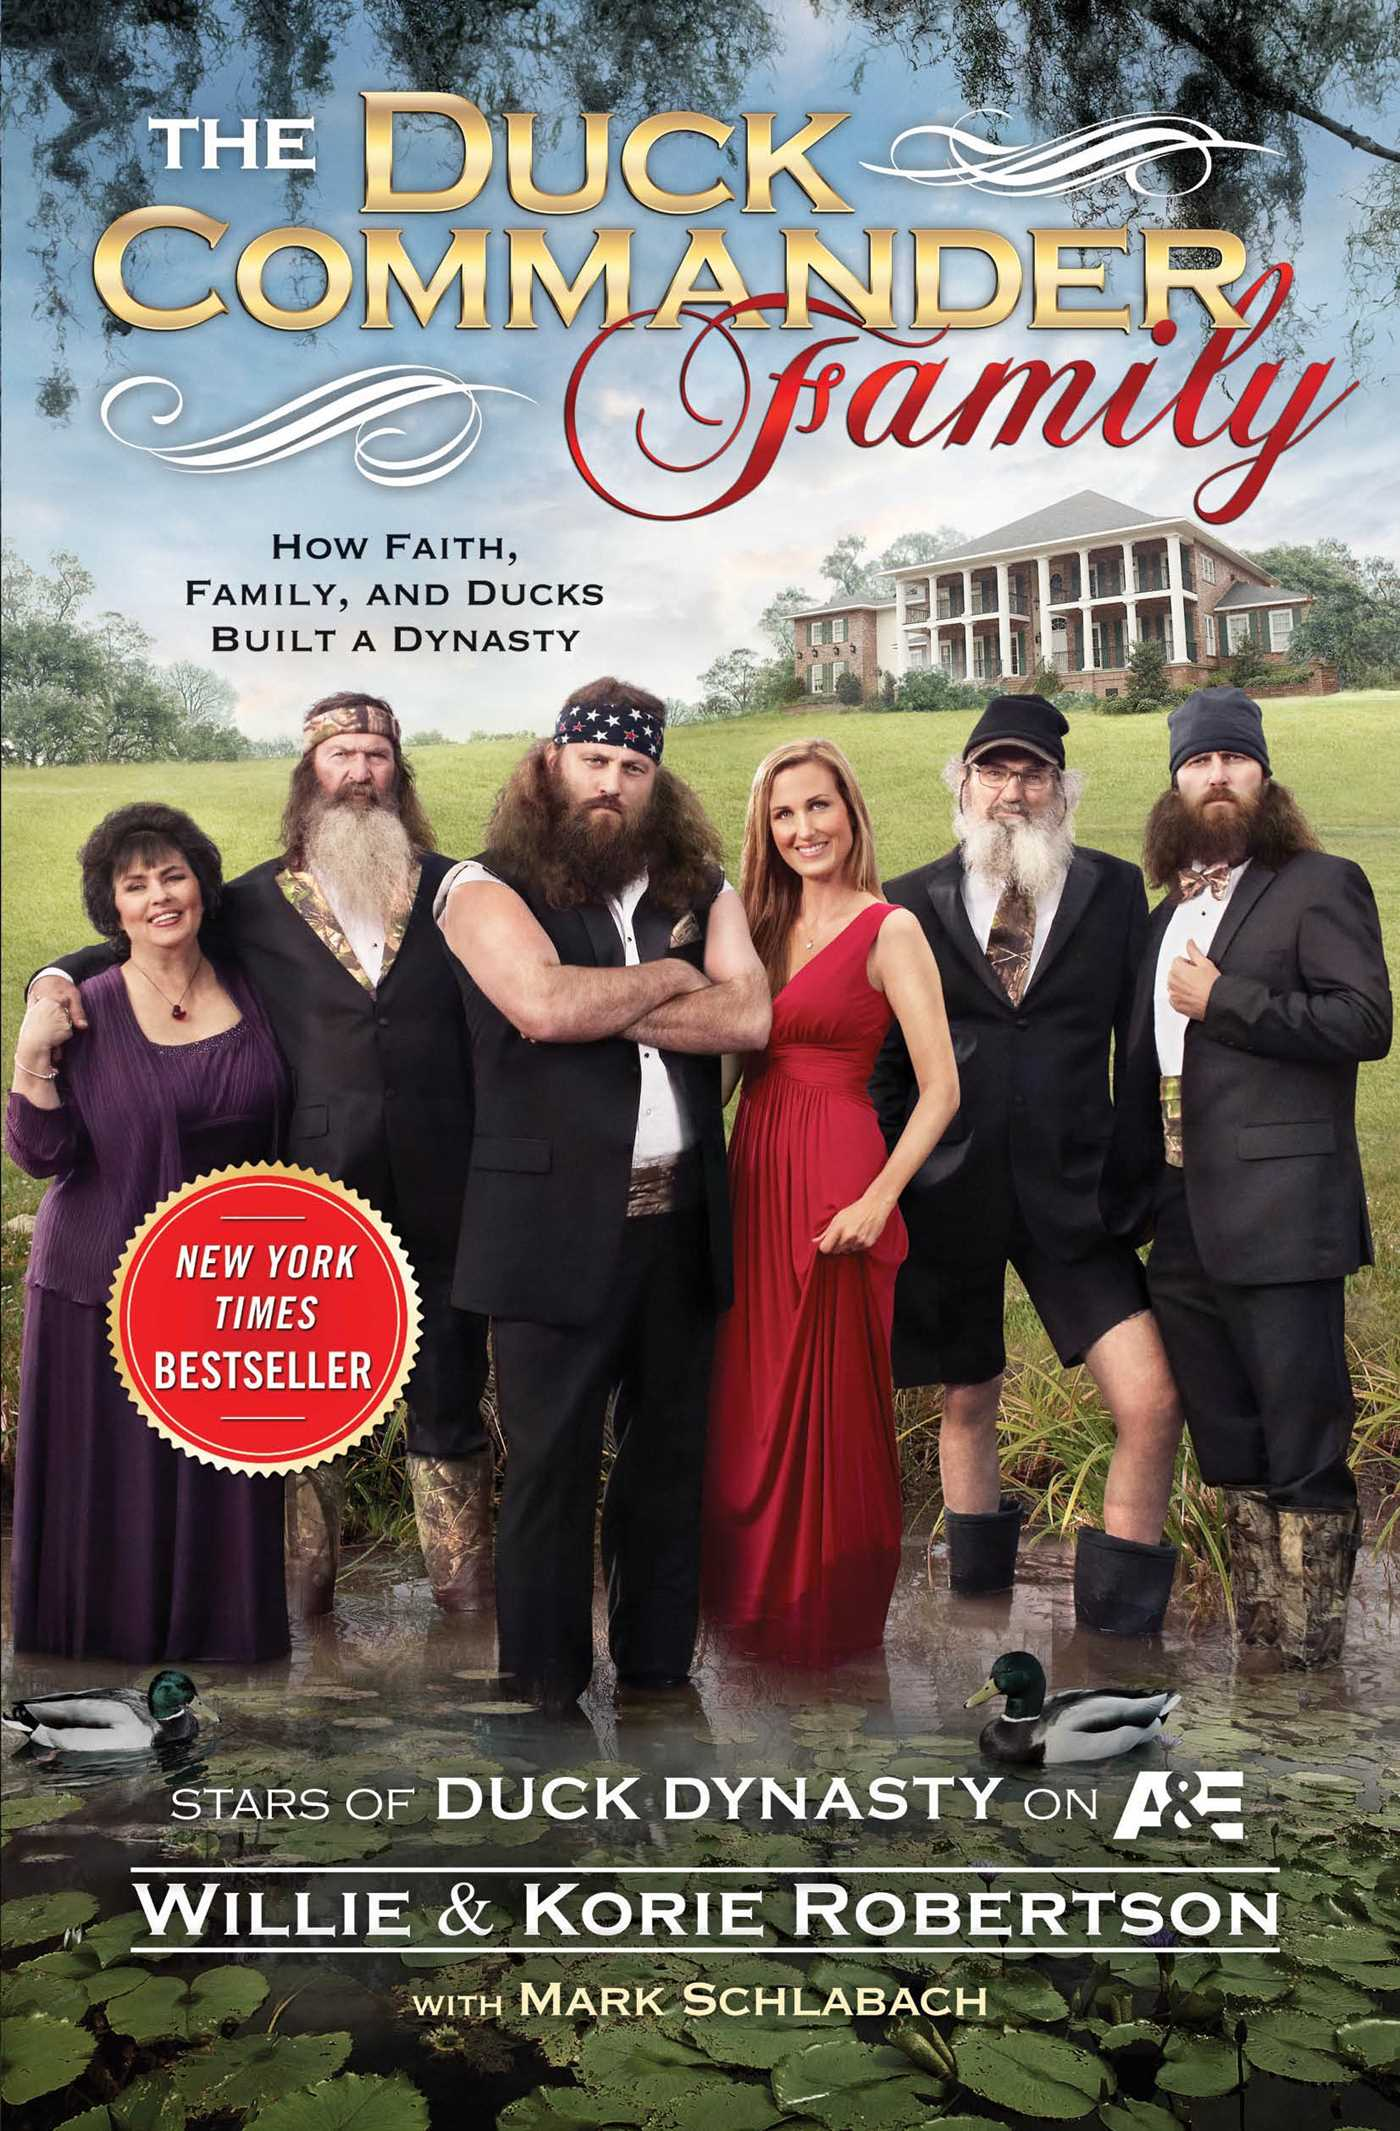 Duck commander family 9781476703626 hr